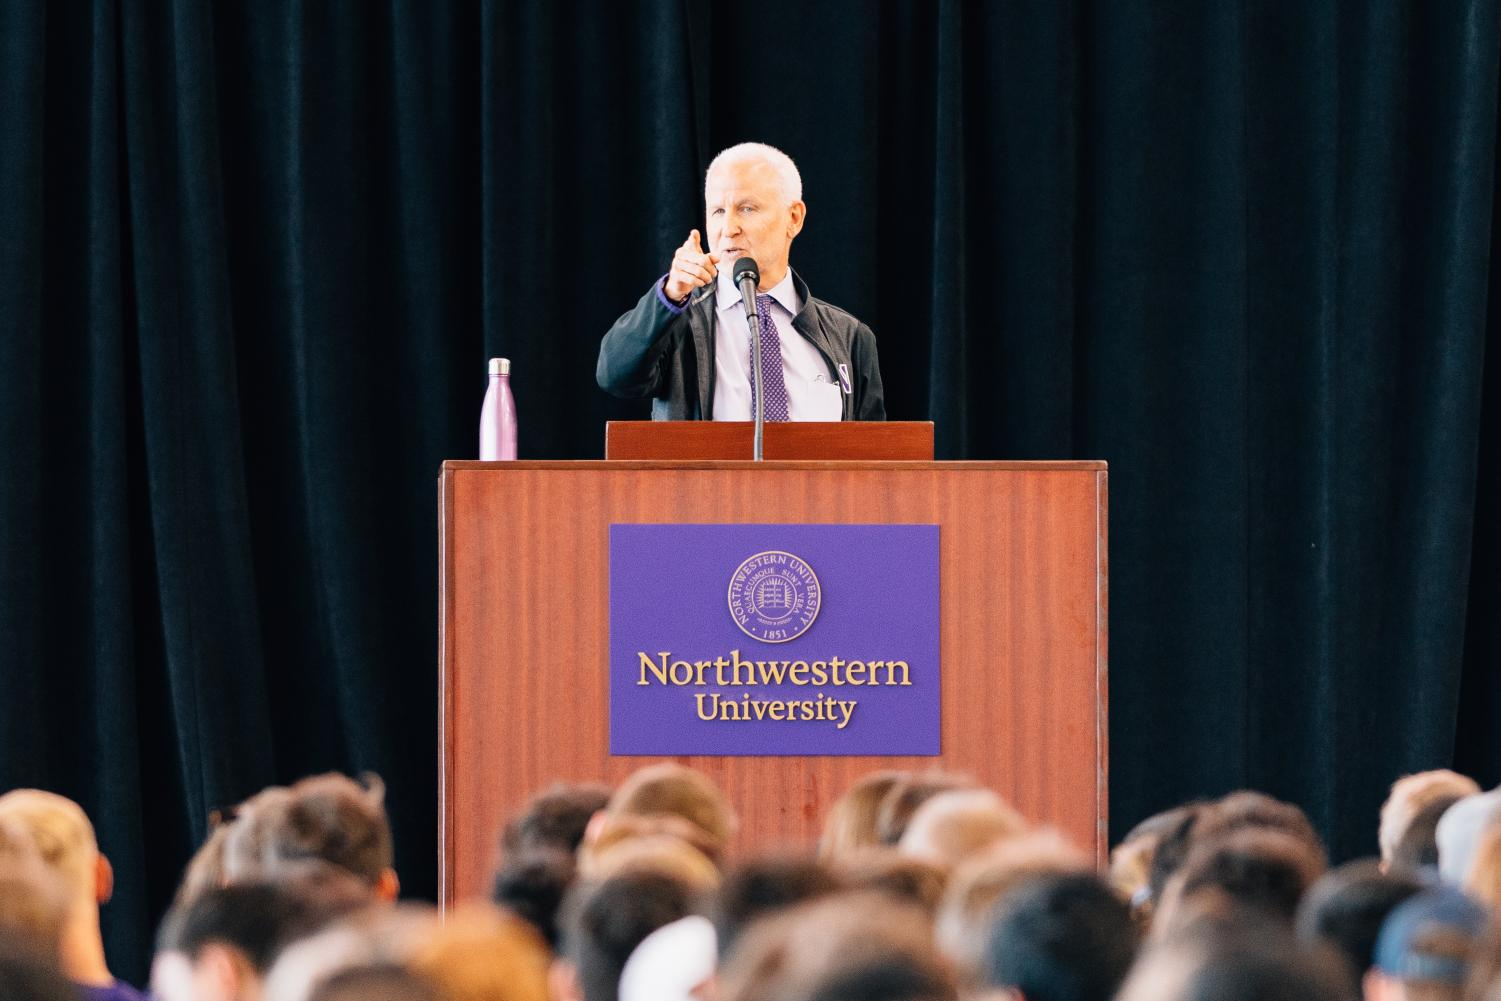 Top administrators offered advice to students during Sunday's convocation. Schapiro delivered a notably less emotional defense of safe spaces, and Holloway discussed the controversial legacy of Thomas Jefferson.